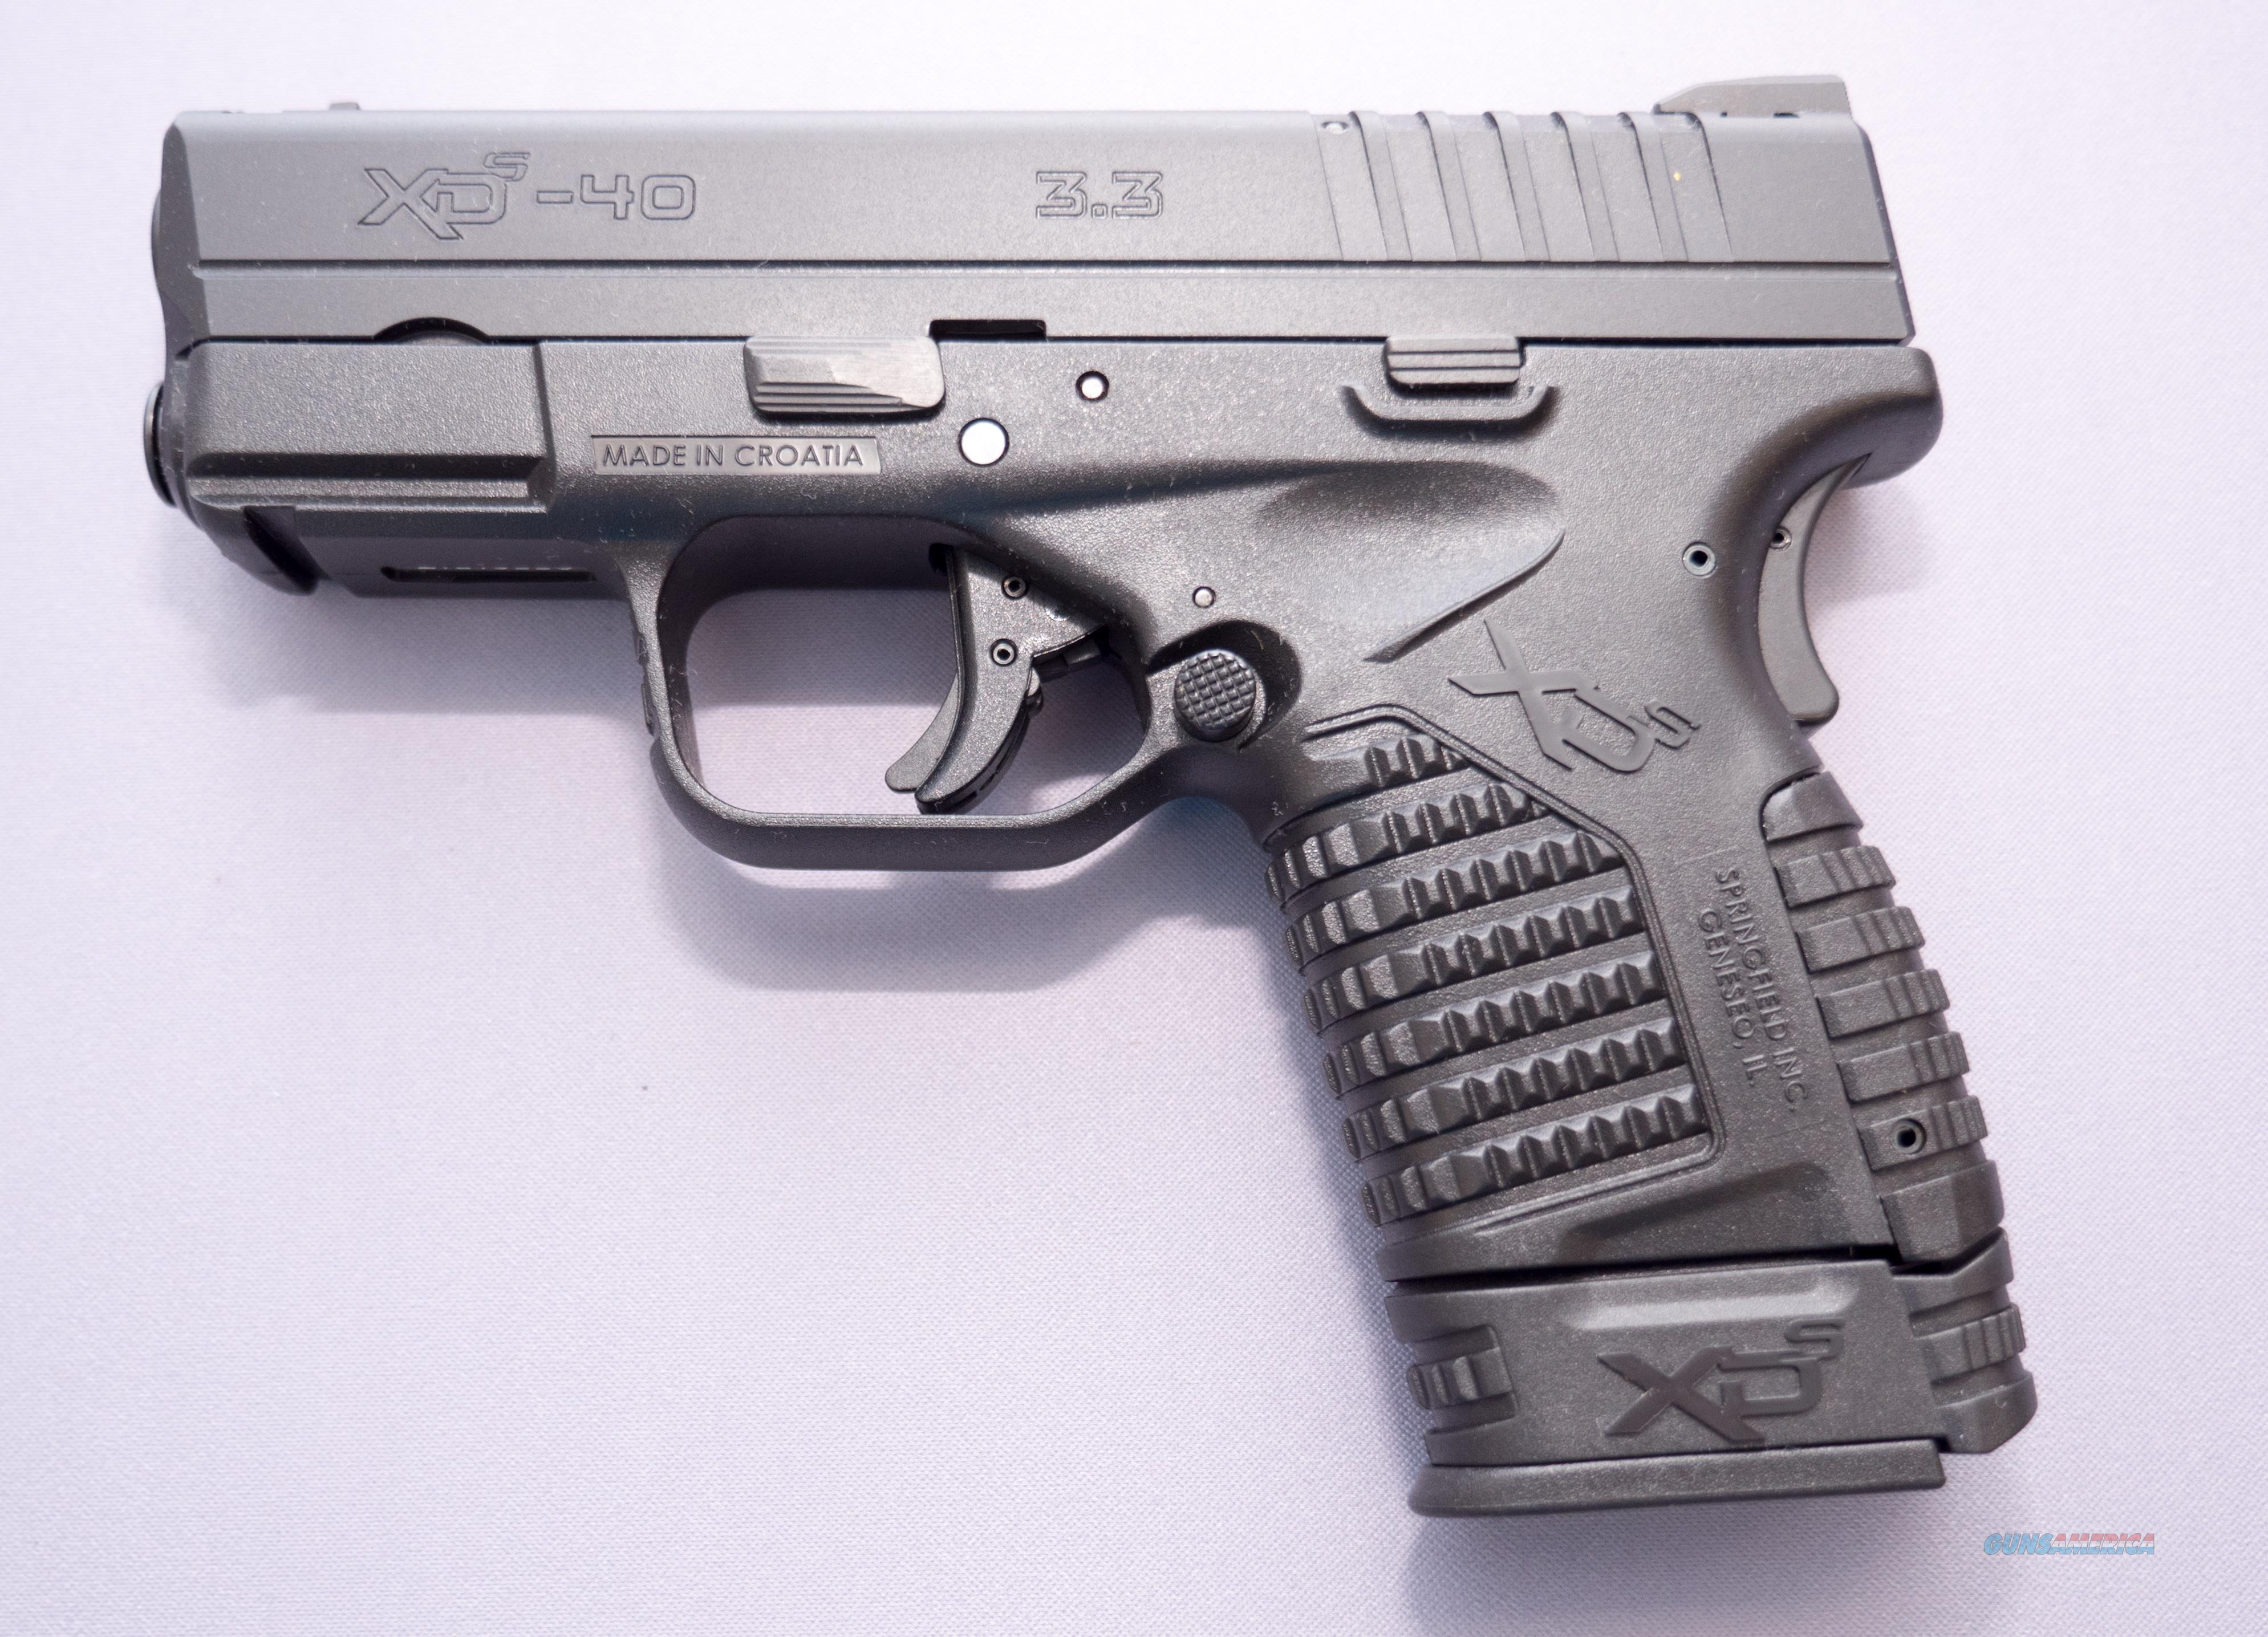 XDS-40 3.3 XDS93340BE .40SW 7+1 No Credit Card Fees $15 Flat Rate Shipping  Guns > Pistols > Springfield Armory Pistols > XD-S